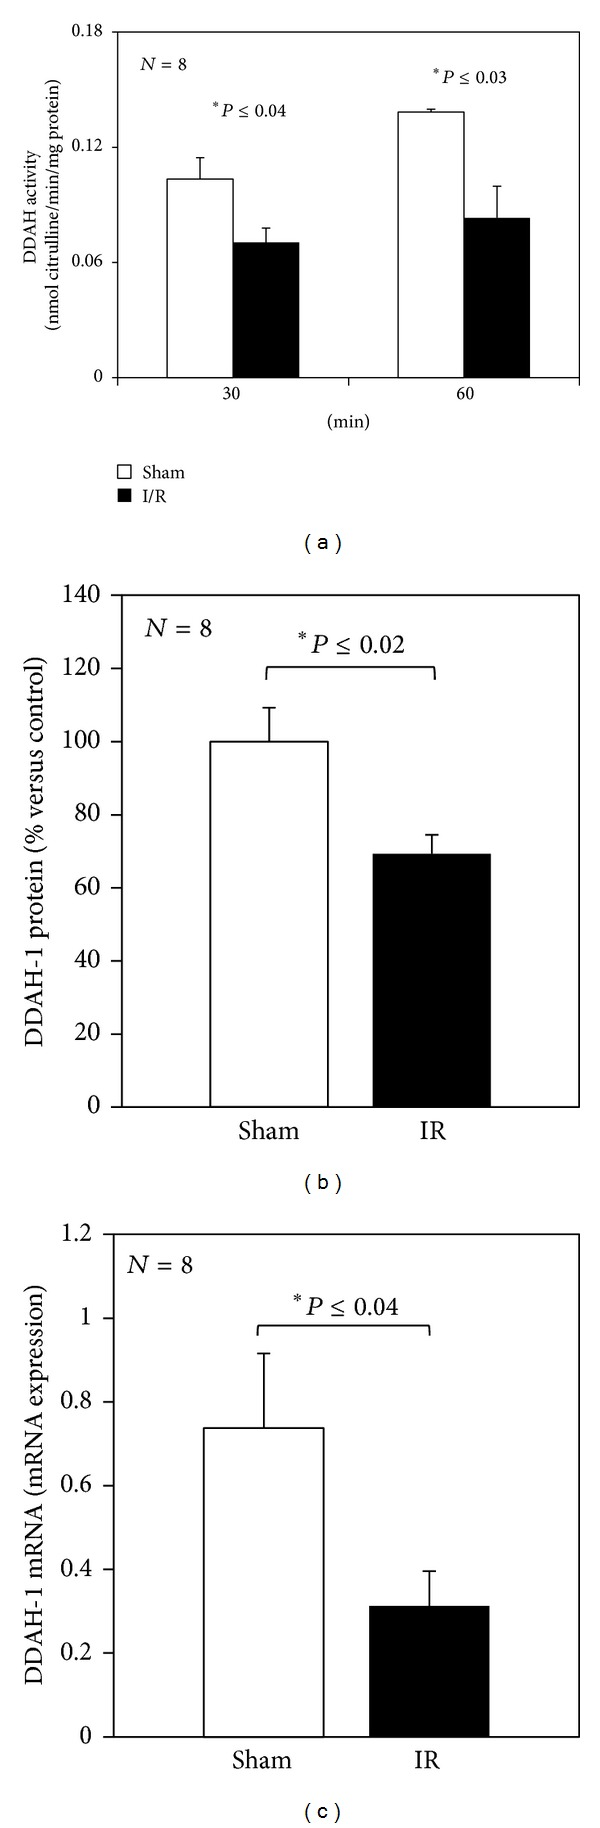 Hepatic DDAH activity and protein and mRNA expression of DDAH-1 at the end of reperfusion. Livers were submitted to 30 or 60 min ischemia followed by 60 min reperfusion, panel (a). Livers were submitted to 60 min ischemia followed by 60 min reperfusion, panels (b) and (c). Sham-operated control animals had similar manipulation without vascular occlusion. After reperfusion, liver samples were collected from all groups. The results are reported as the mean S.E. of 8 different experiments.